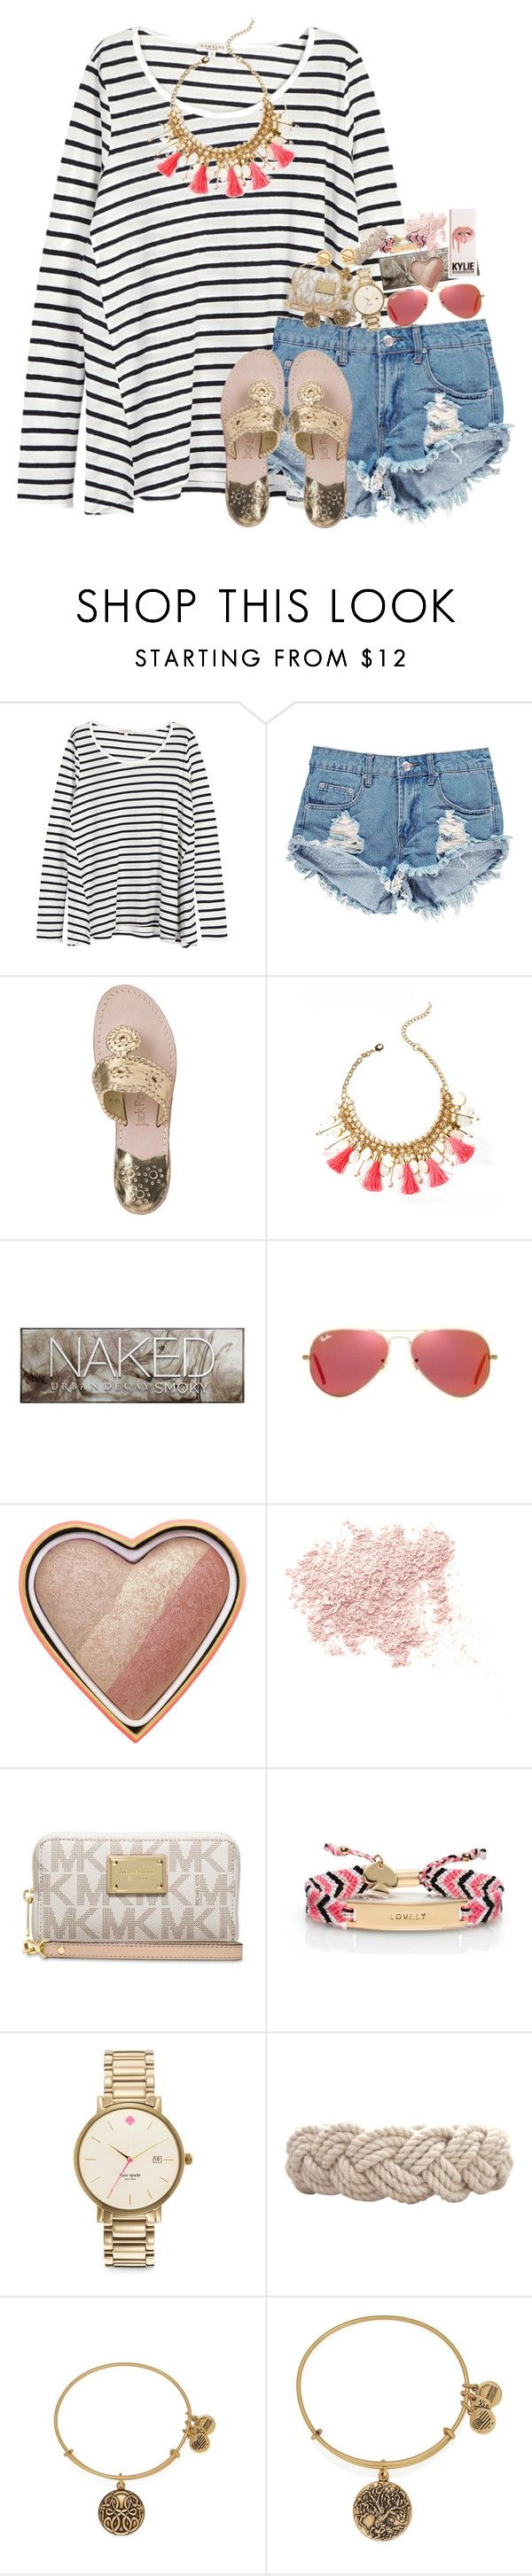 """""""thinking ab doing a contest"""" by kate-elizabethh ❤ liked on Polyvore featuring Demylee, Boohoo, Jack Rogers, Lilly Pulitzer, Urban Decay, Ray-Ban, Too Faced Cosmetics, Bare Escentuals, MICHAEL Michael Kors and Kate Spade"""